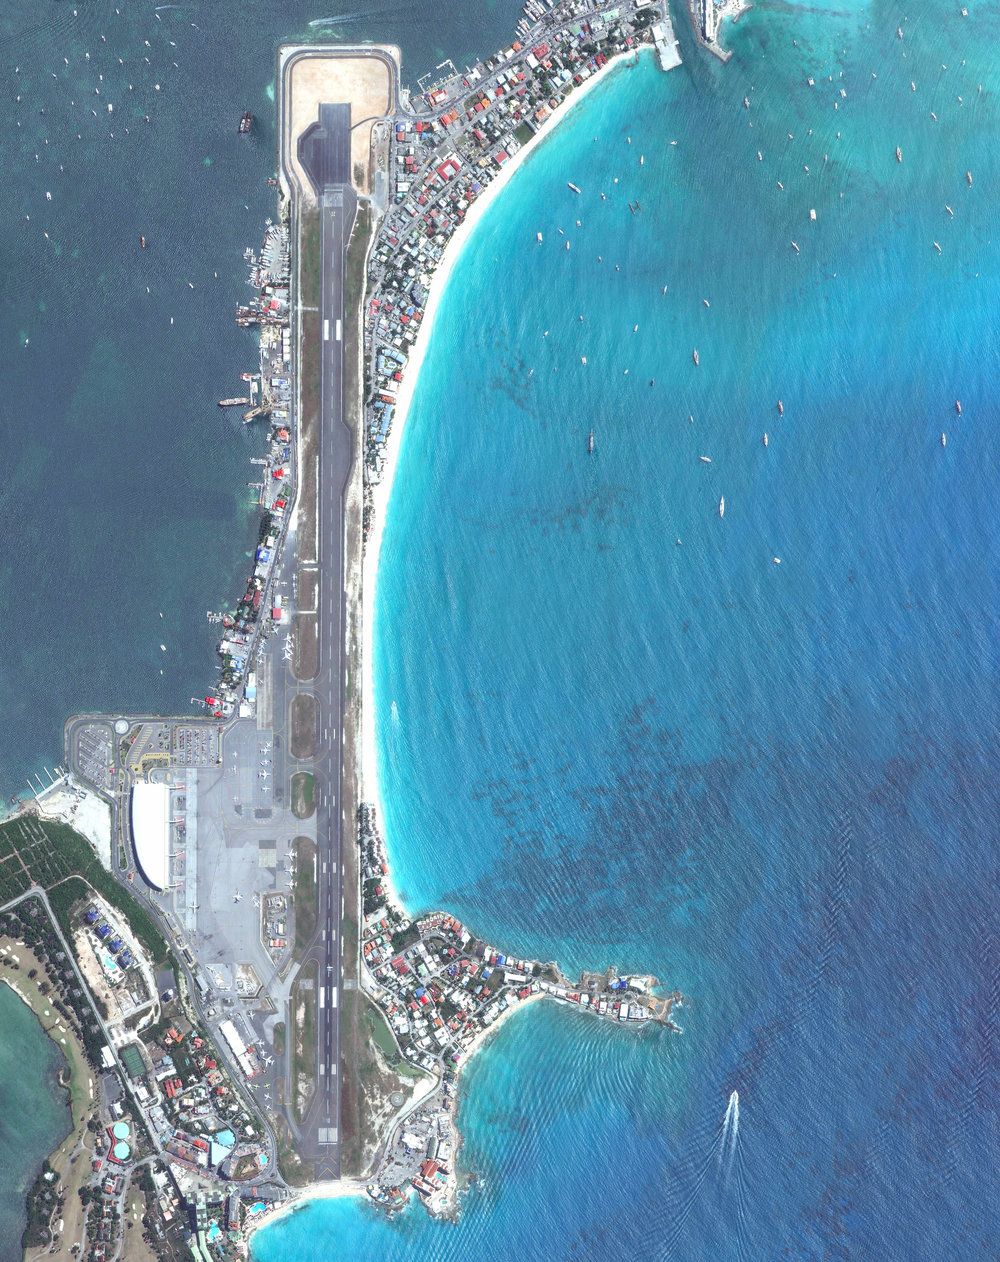 3/20/2017 Princess Juliana International Airport Saint Martin 18.040823°, -63.109948°   Princess Juliana International Airport is the main airport on the Caribbean island of Saint Martin. The airport is well-known for the approach to Runway 10, seen at the bottom of this Overview. Here arriving aircraft must have a 3° glide slope, flying at a shockingly low altitude over people relaxing on Maho Beach, to land safely.